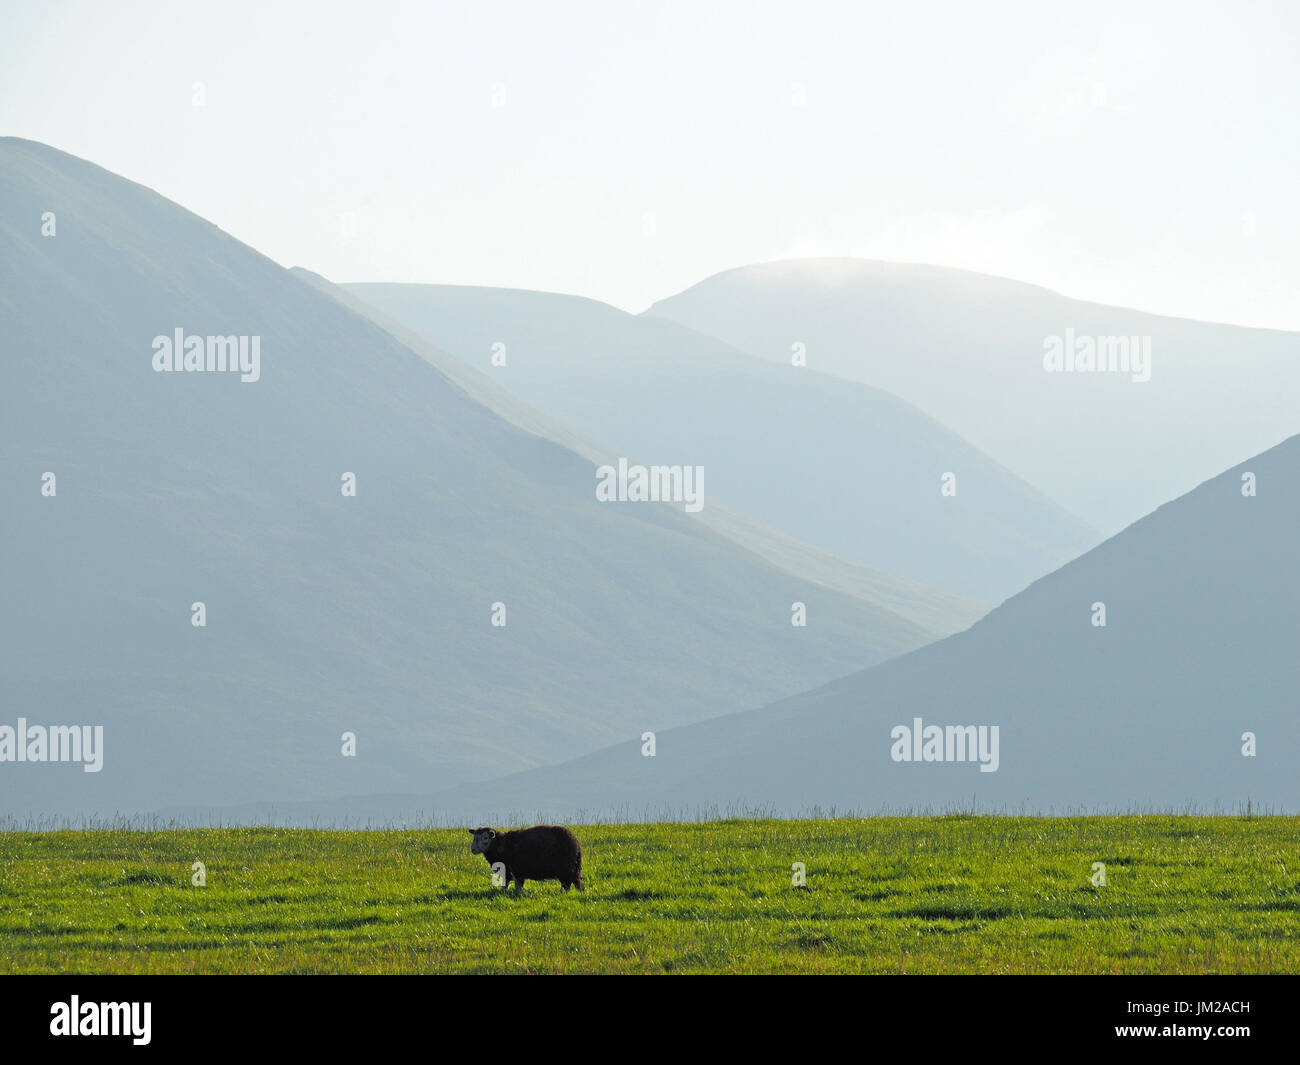 Lake District, UK. 25th July, 2017. A Herdwick sheep looks up from grazing in front of receding hills in evening - Stock Image